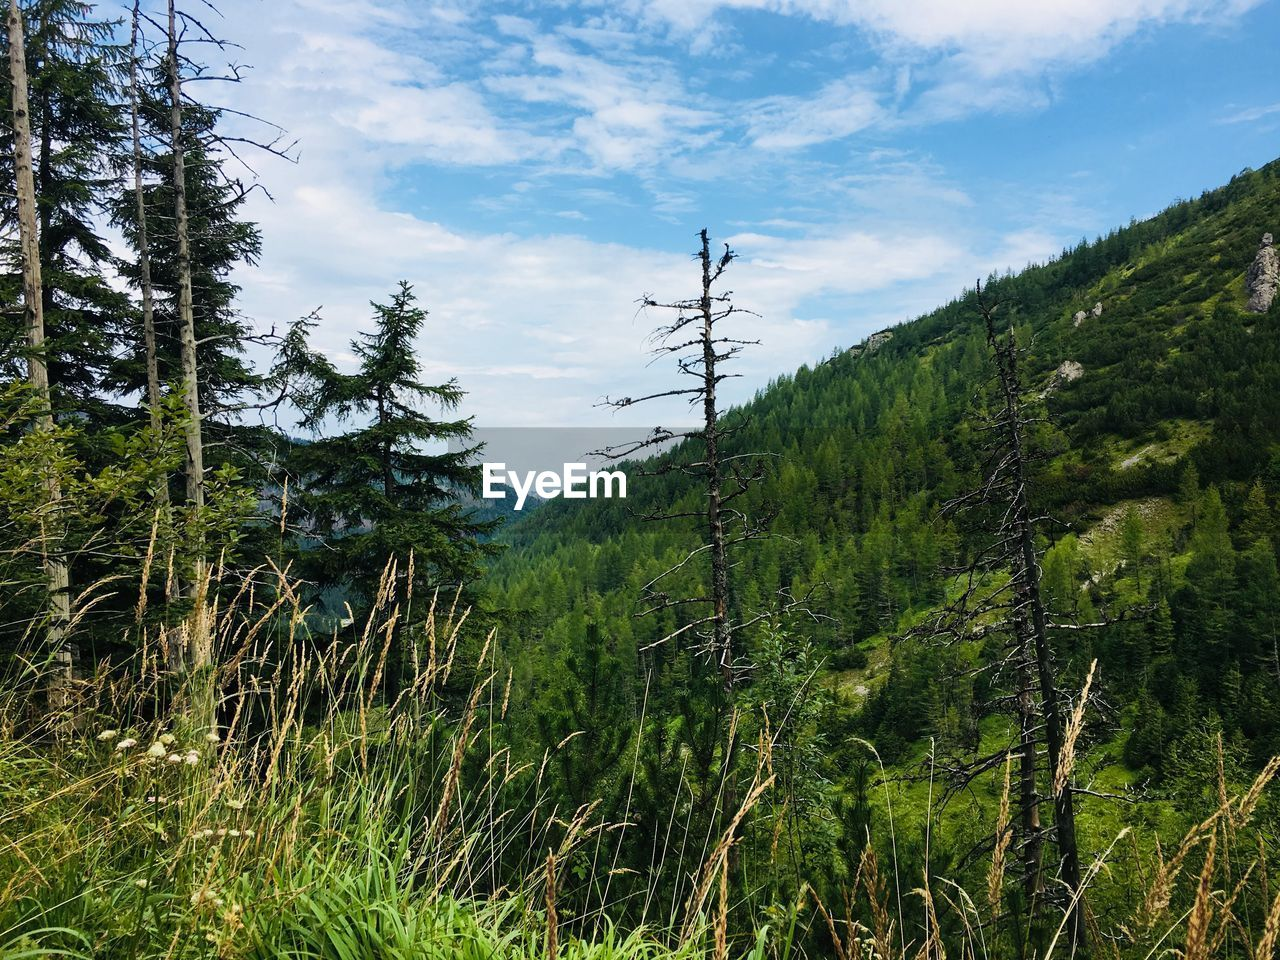 plant, tree, growth, beauty in nature, green color, sky, tranquil scene, tranquility, nature, land, forest, cloud - sky, scenics - nature, non-urban scene, day, no people, mountain, outdoors, connection, idyllic, electricity, power supply, coniferous tree